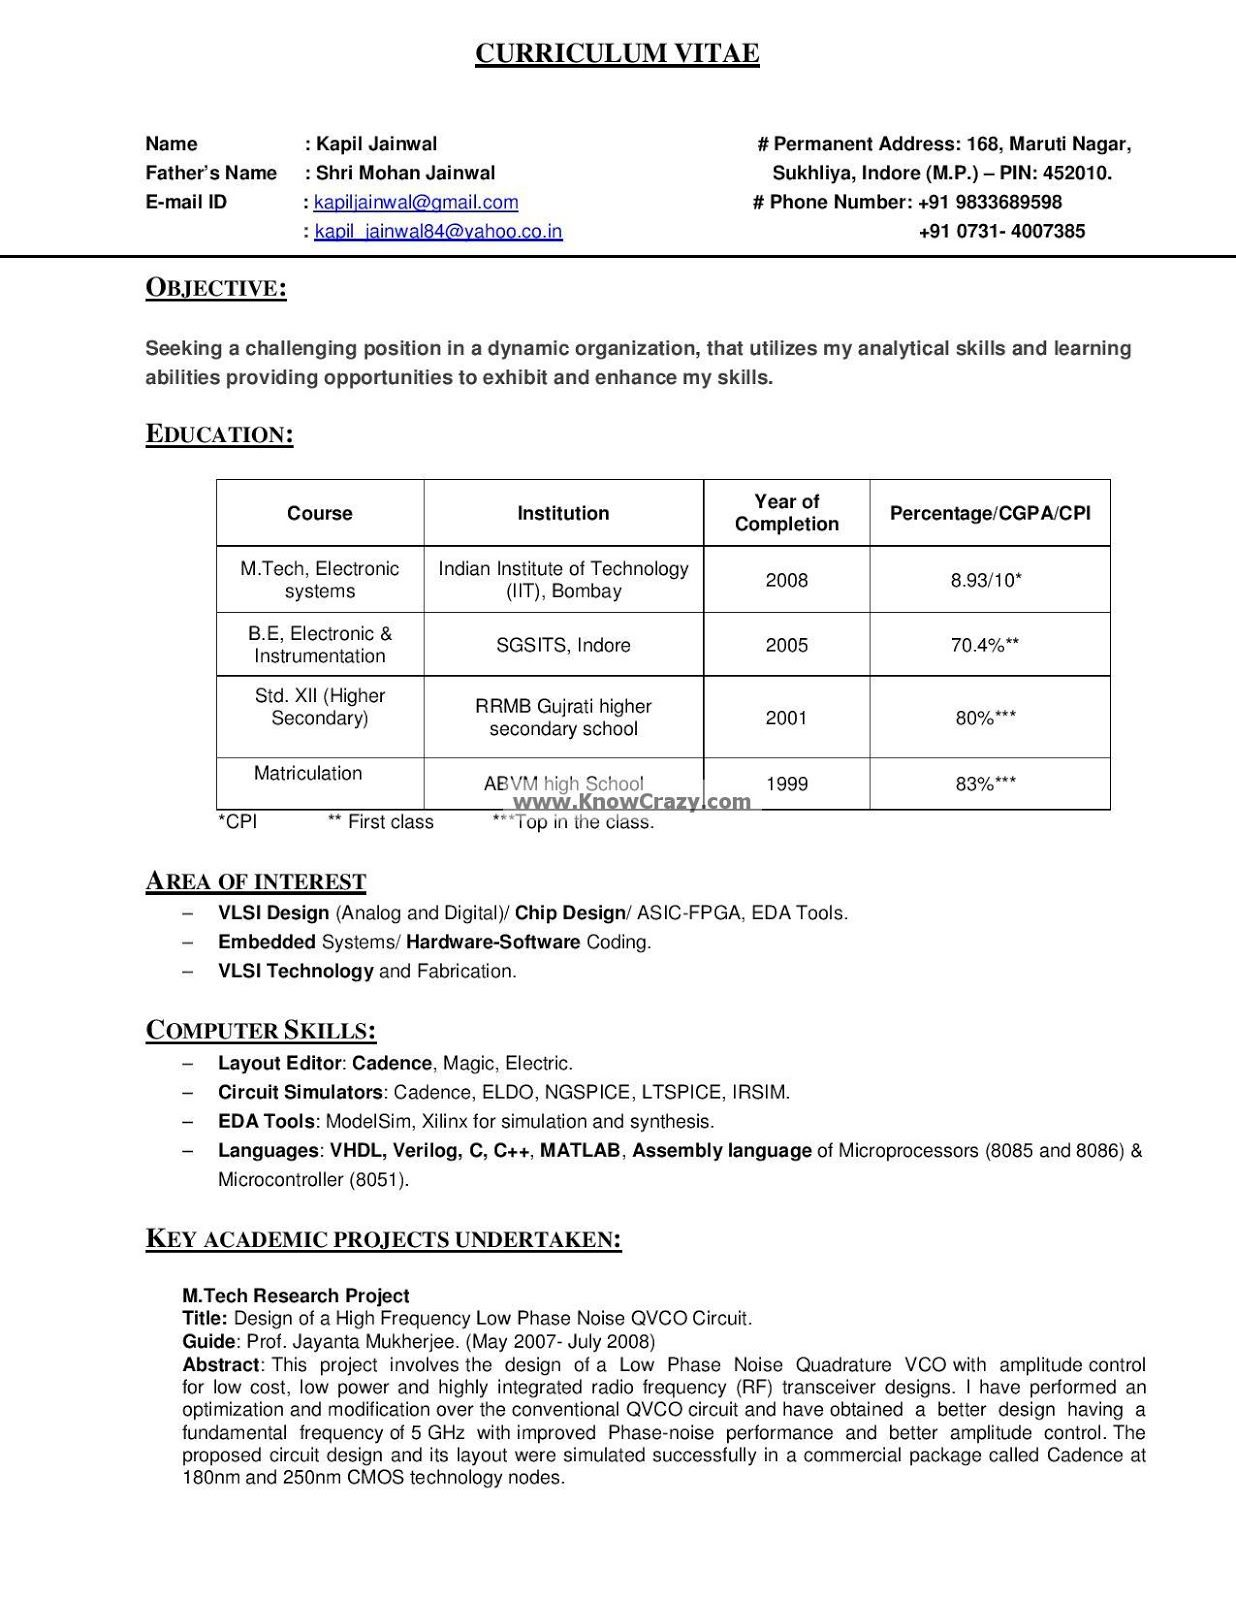 classy official resume format india on 100 good resume sample